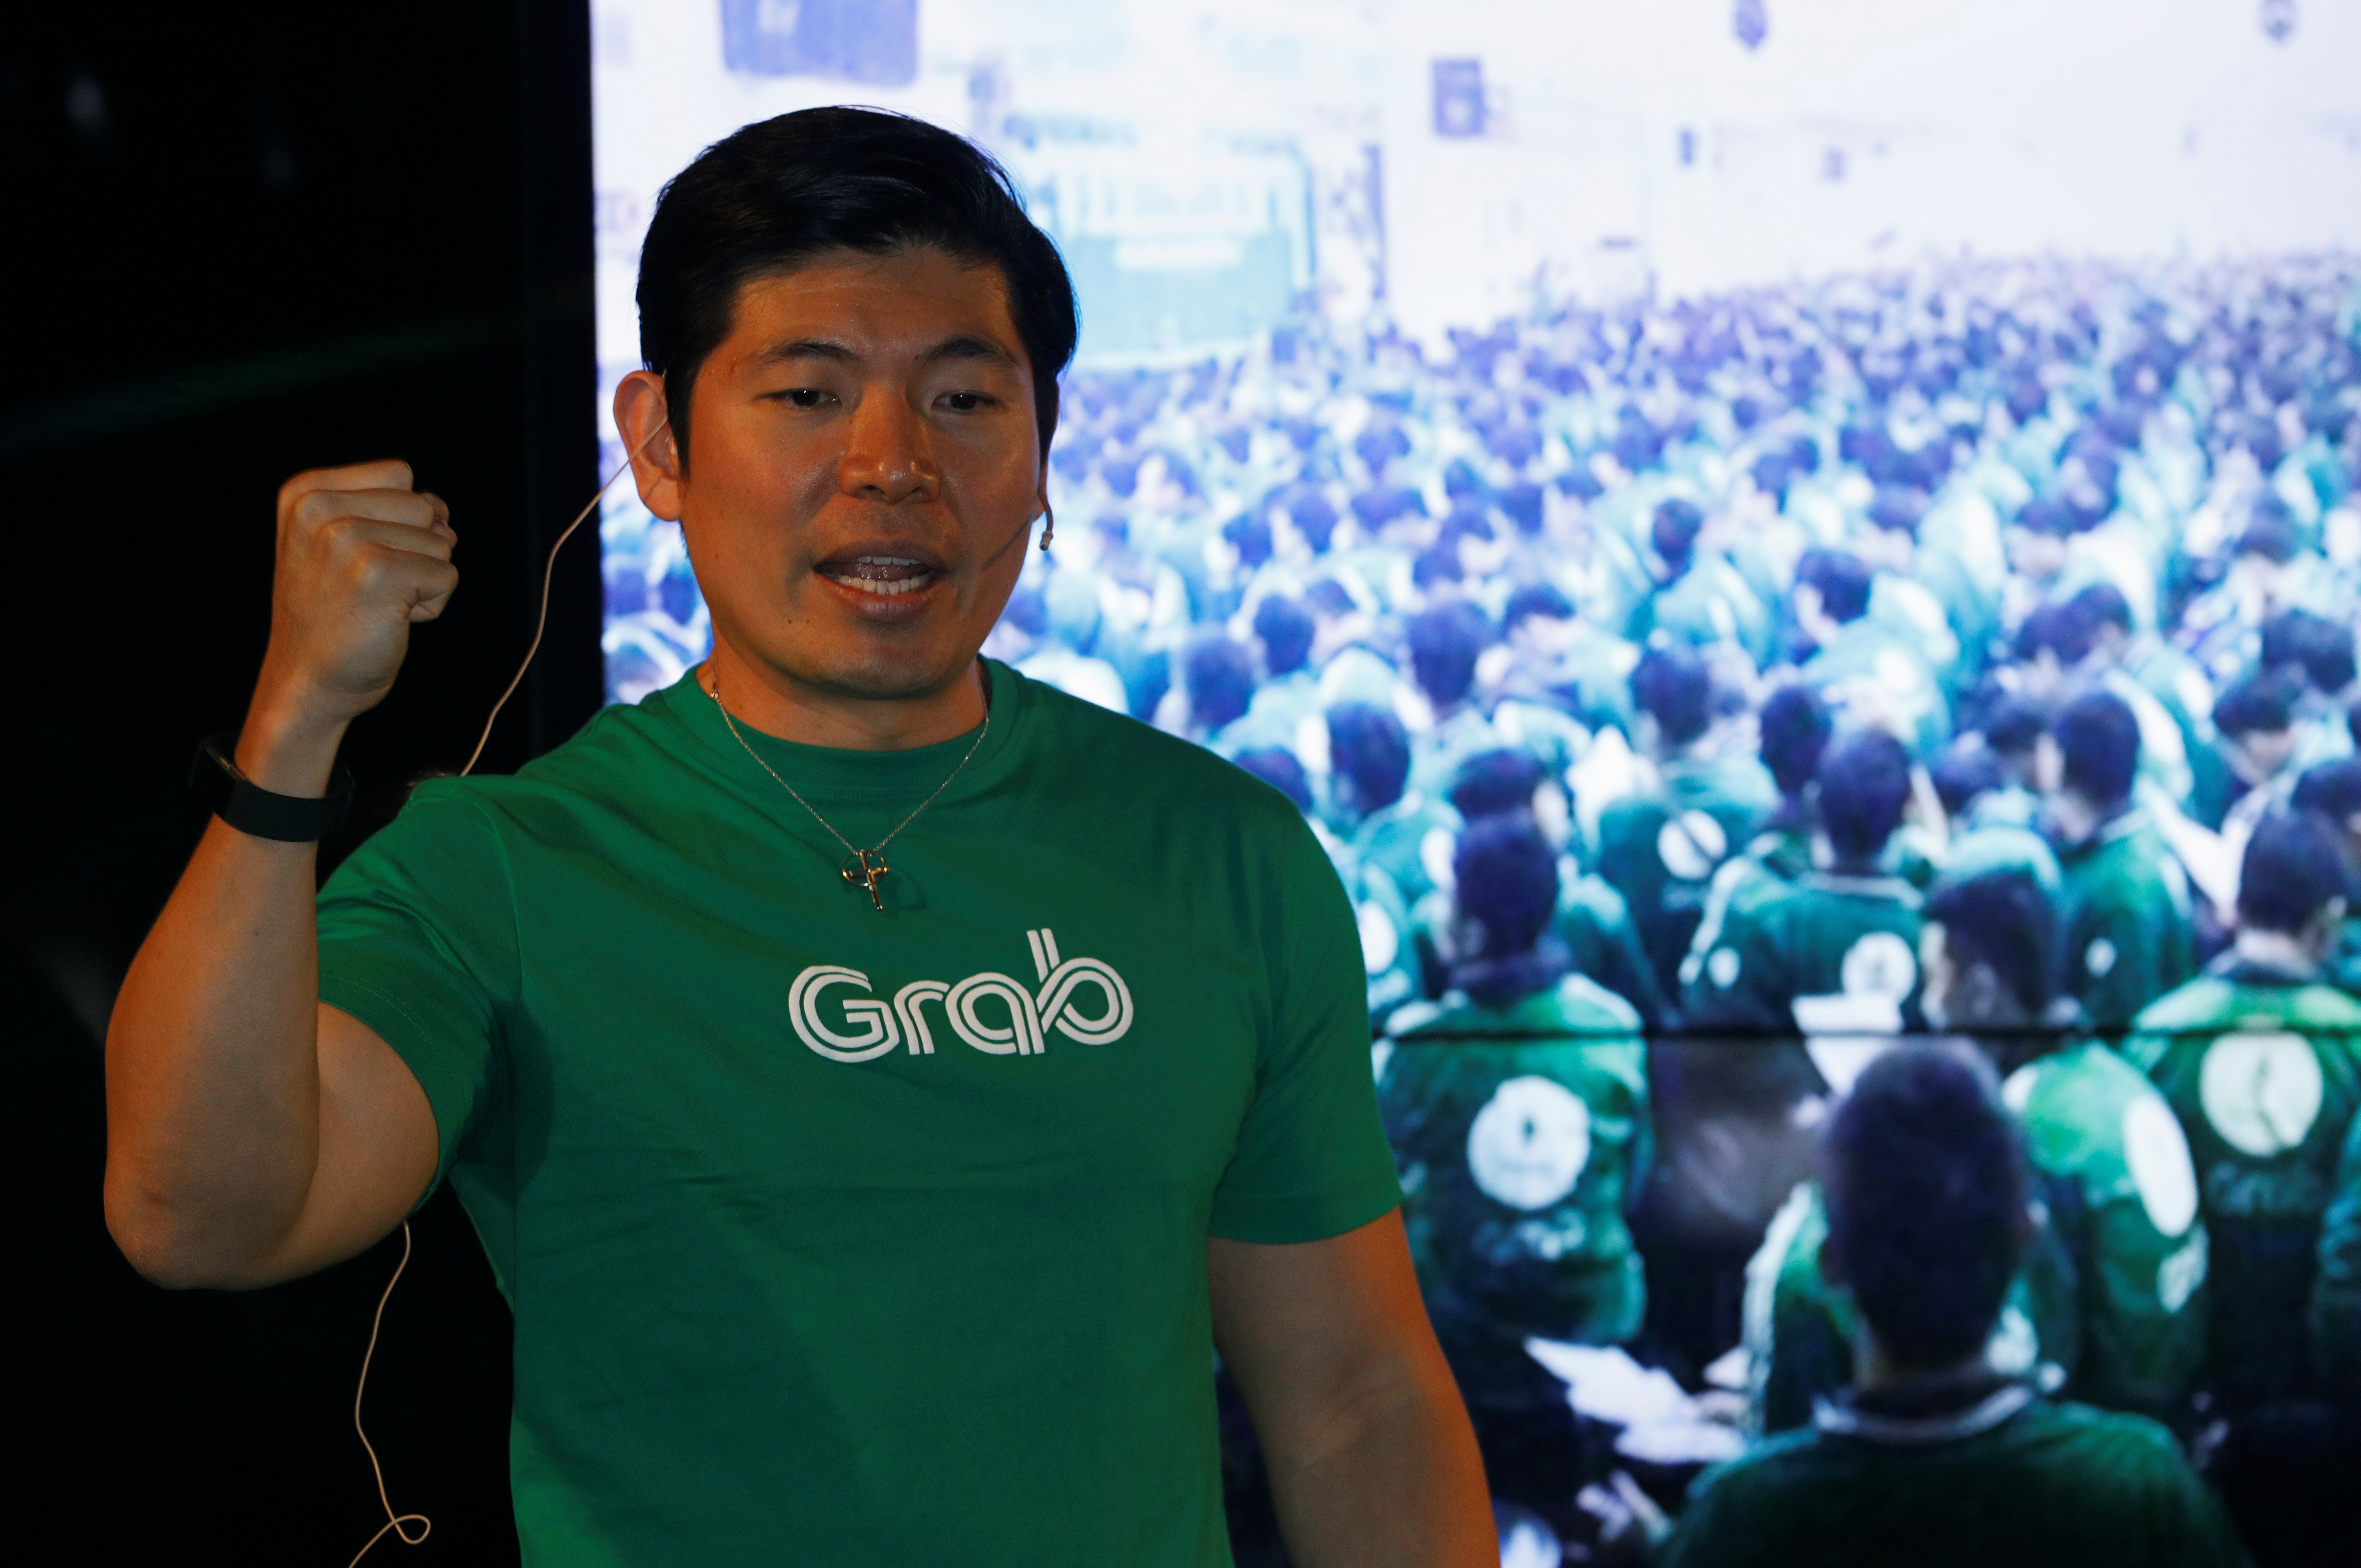 Grab's CEO Anthony Tan speaks during Grab's fifth anniversary news conference in Singapore June 6, 2017. REUTERS/Edgar Su - RC169CEFCF30